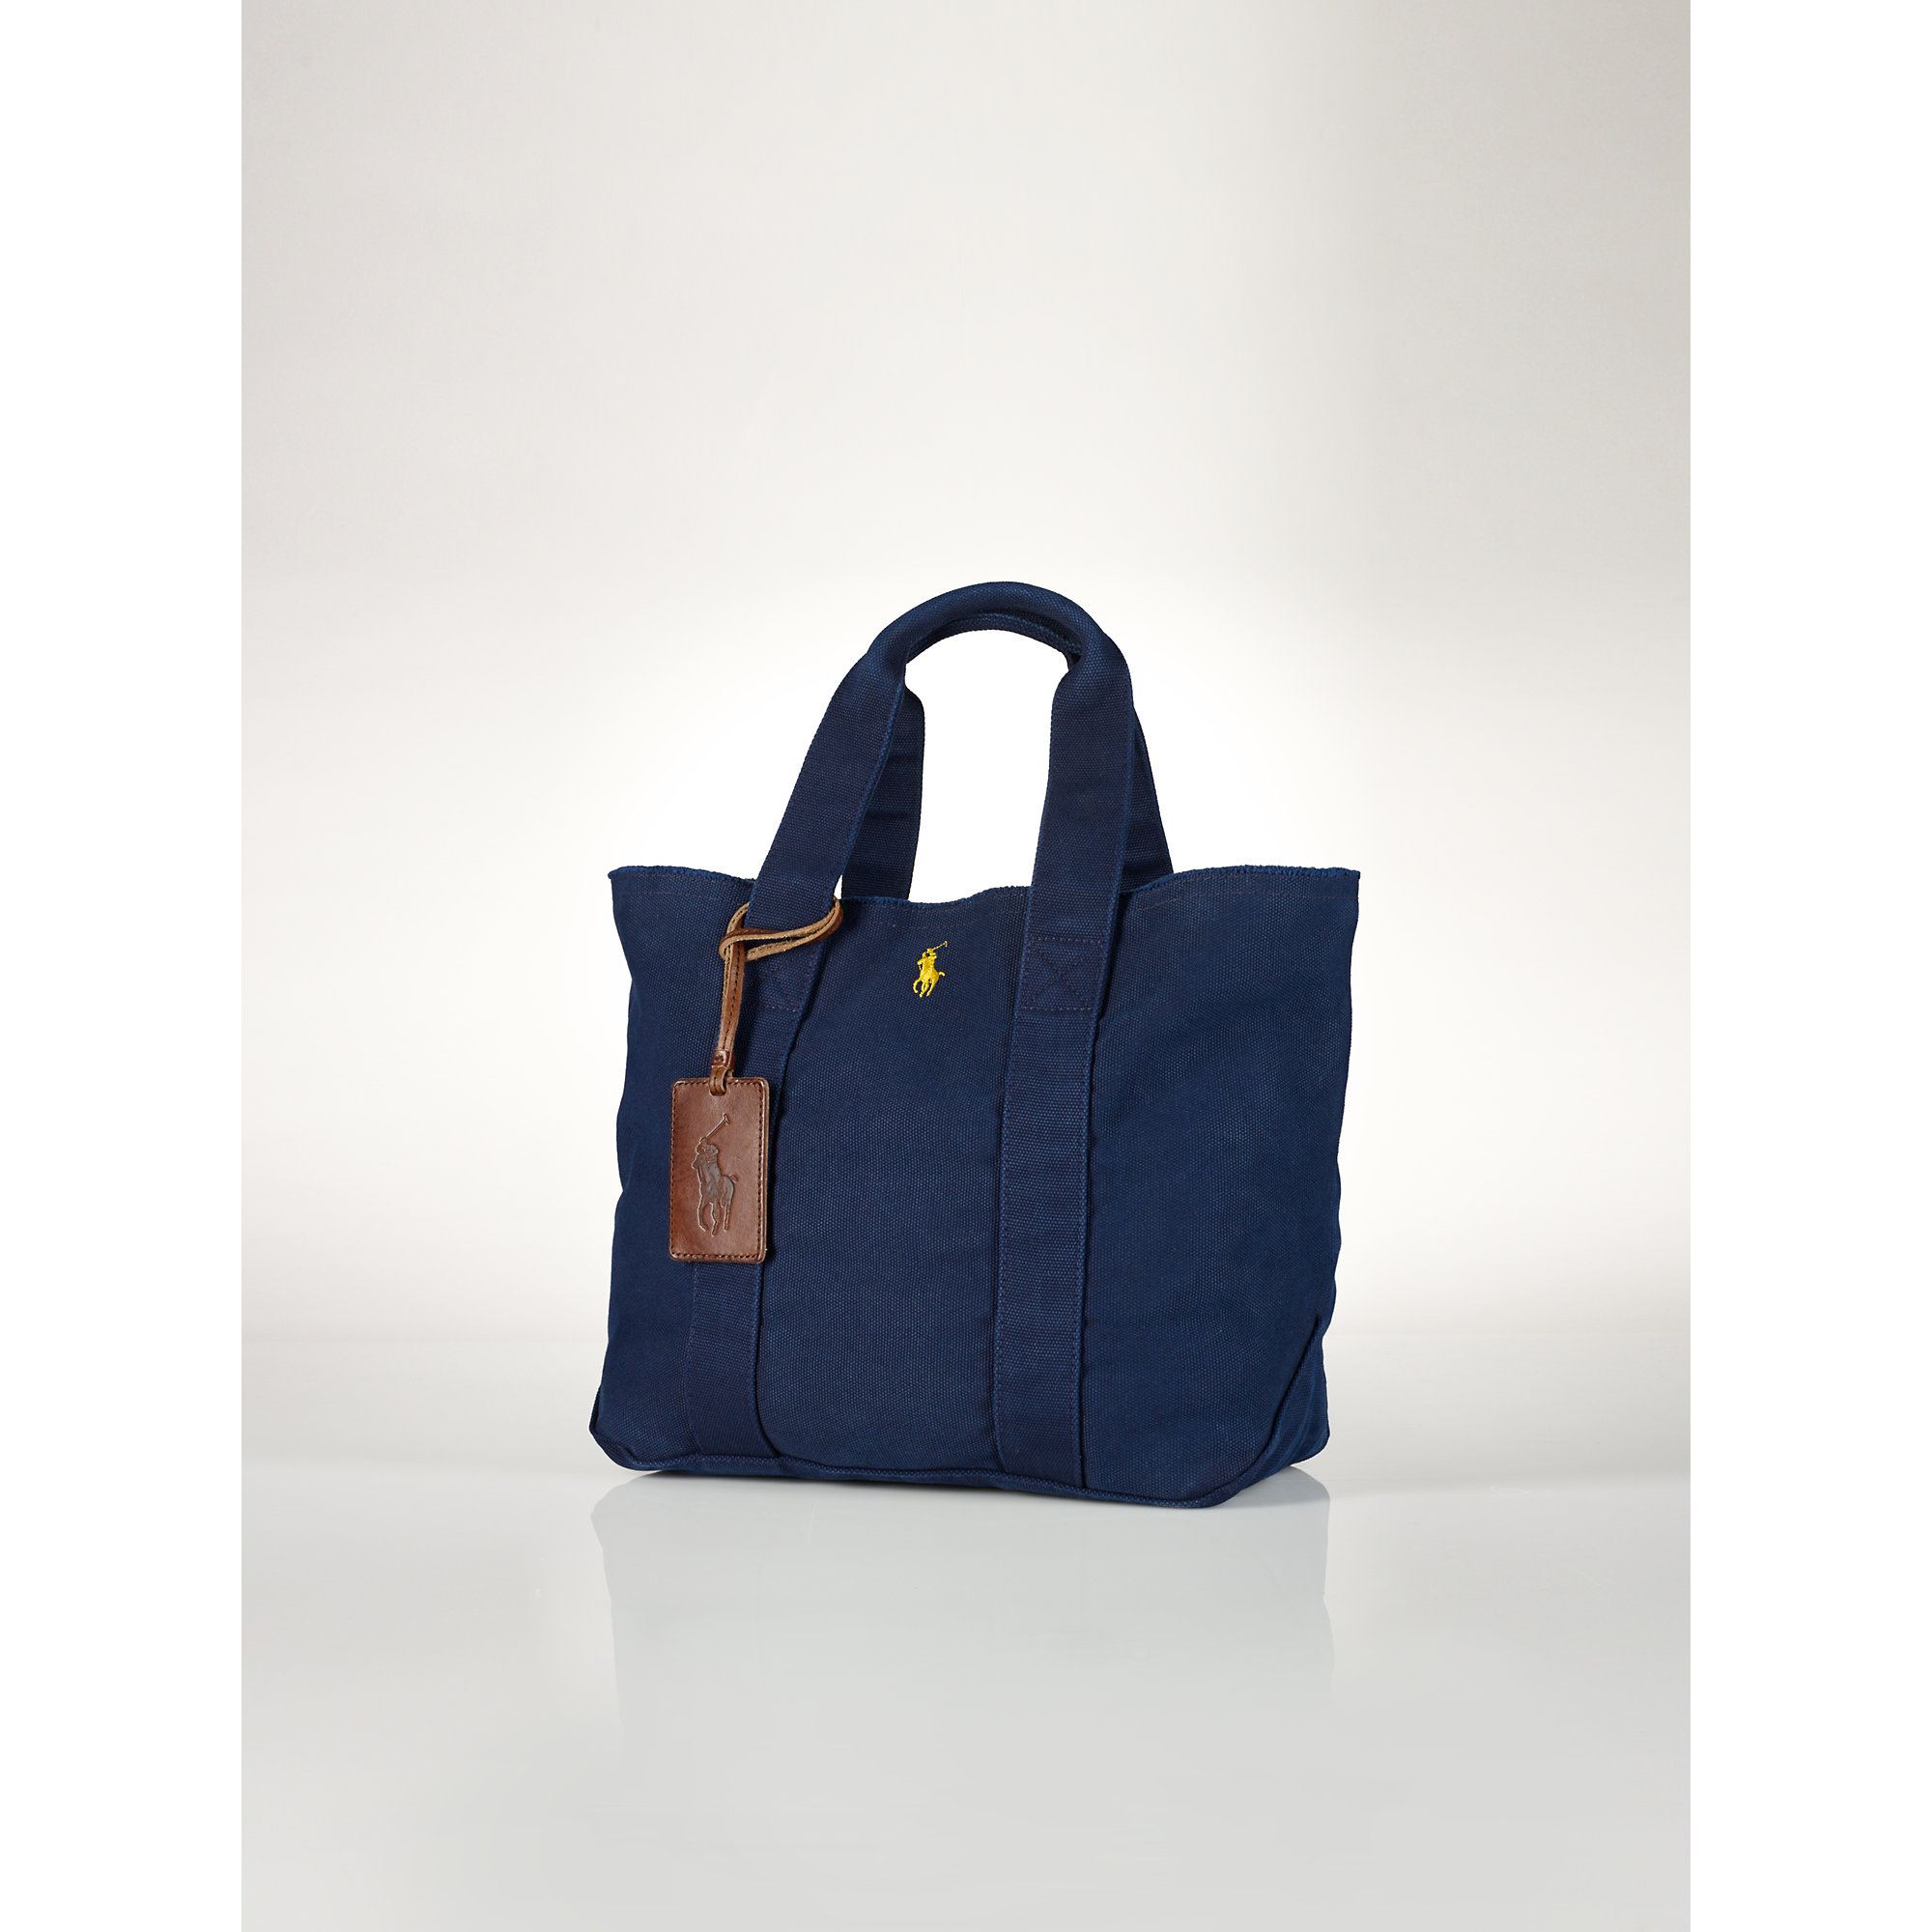 37555c4dc8 Lyst - Polo Ralph Lauren Cotton Canvas Tote in Blue